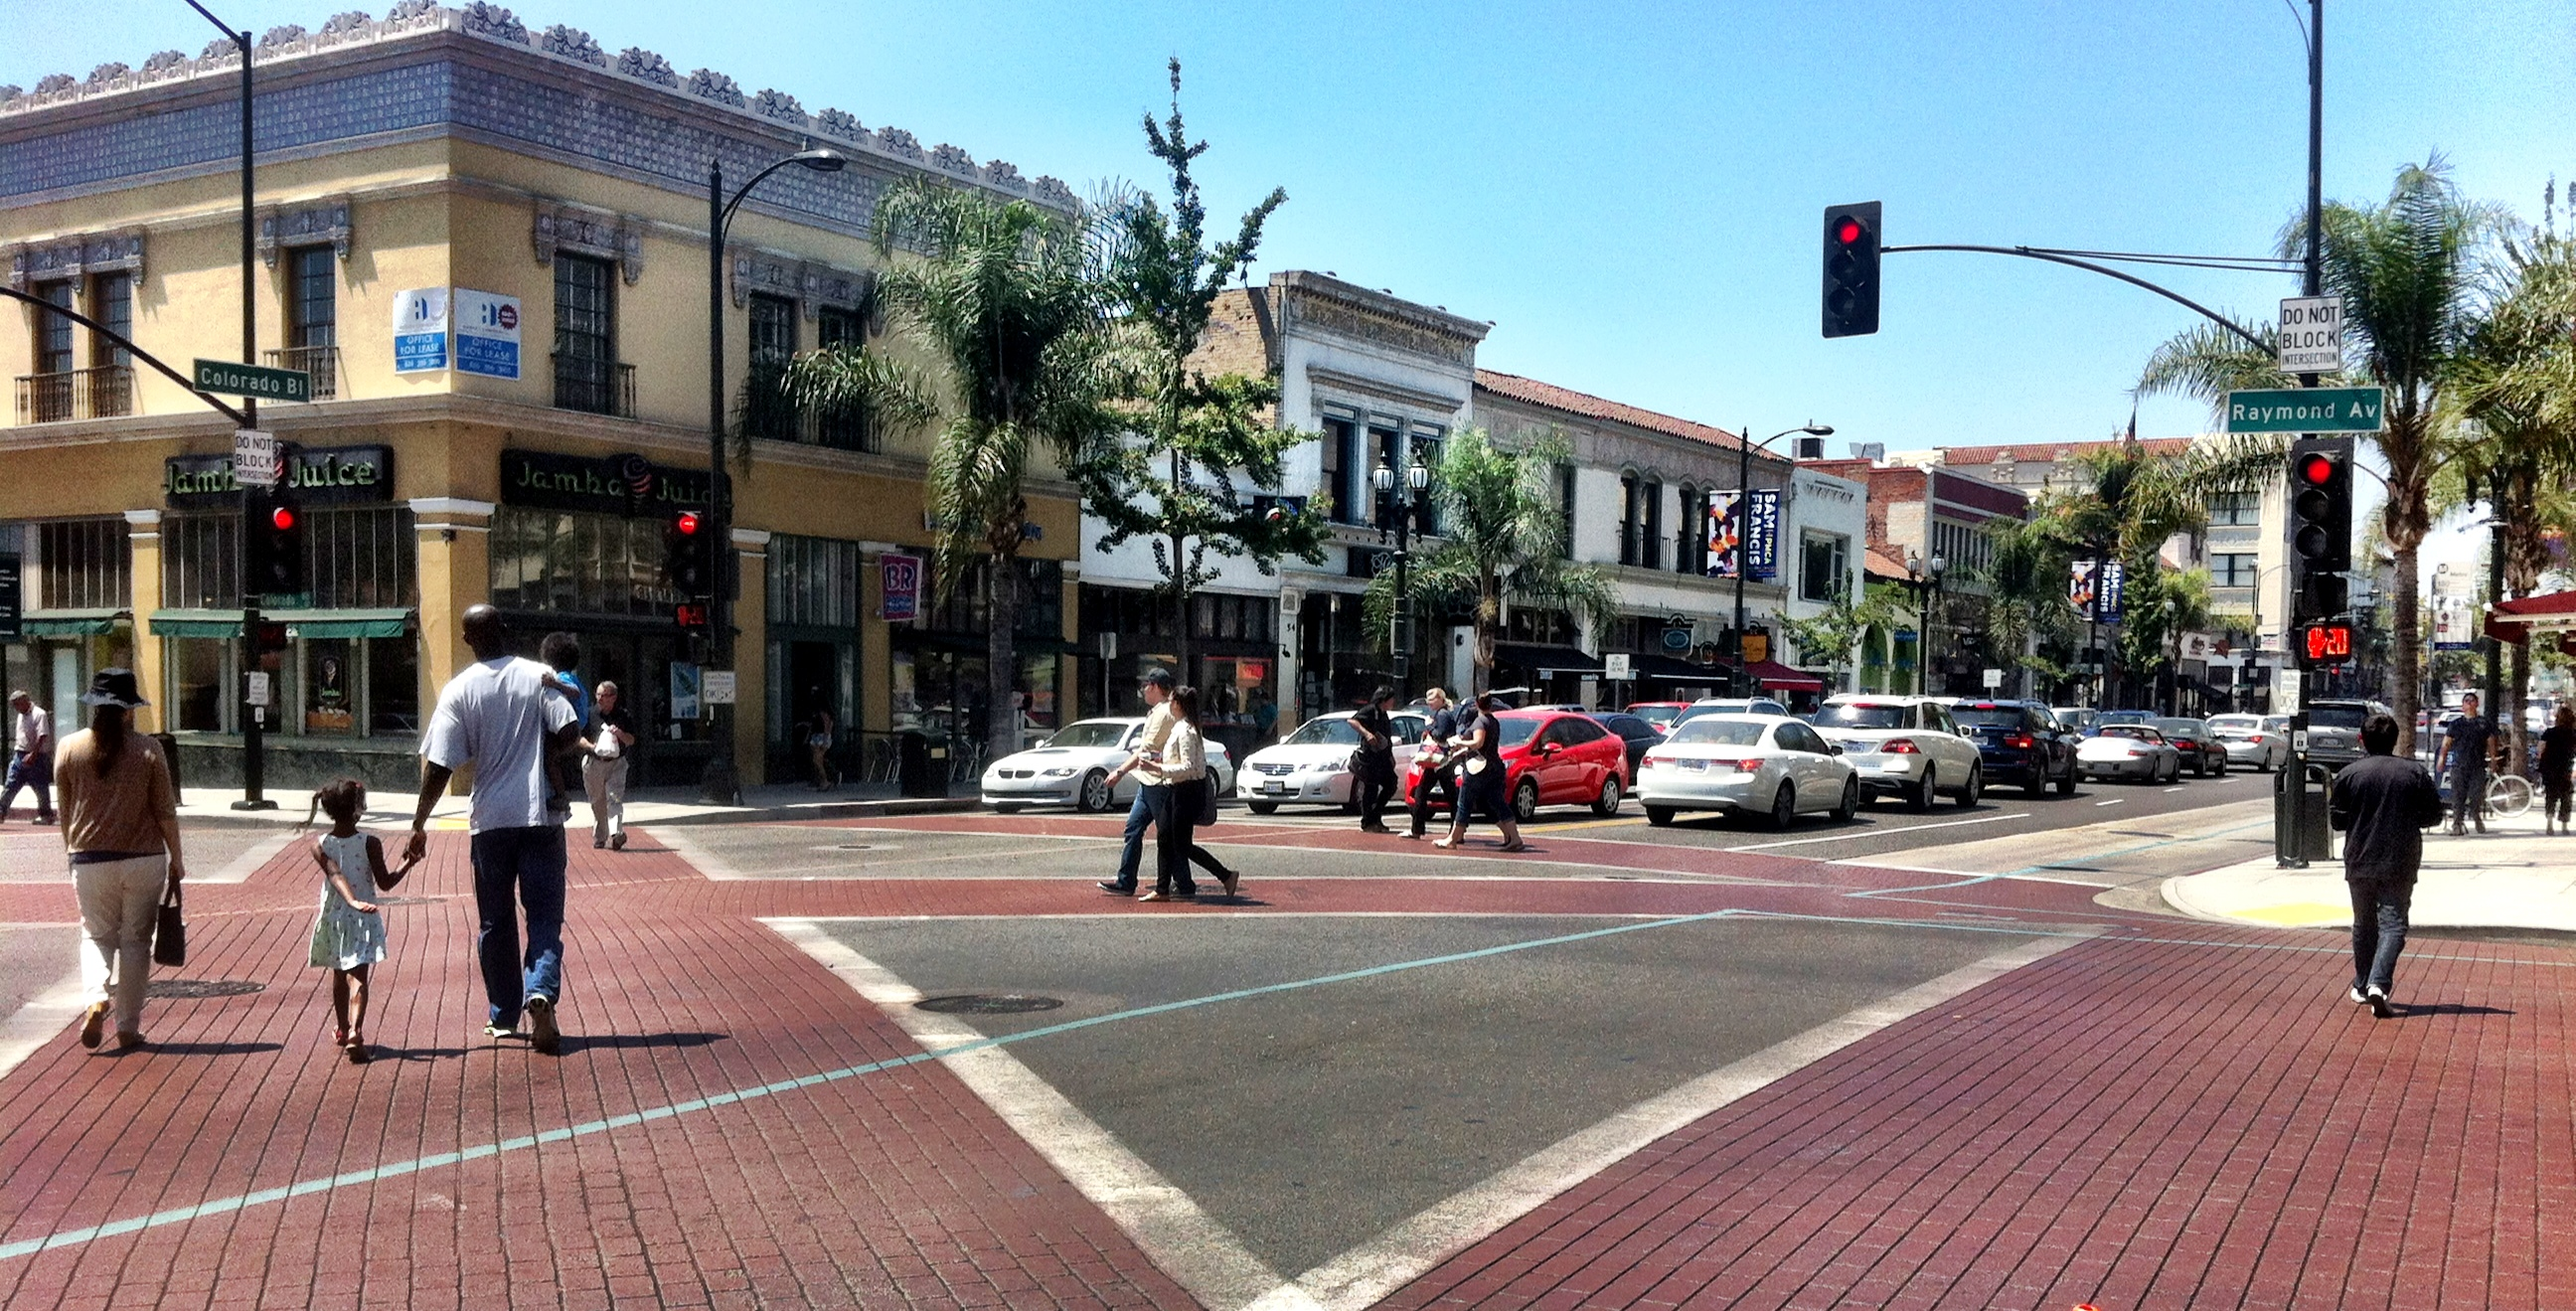 Oct 07, · Old Pasadena is the downtown historic business district of Pasadena, a lively and diverse city located just ten miles from downtown Los Angeles/5().